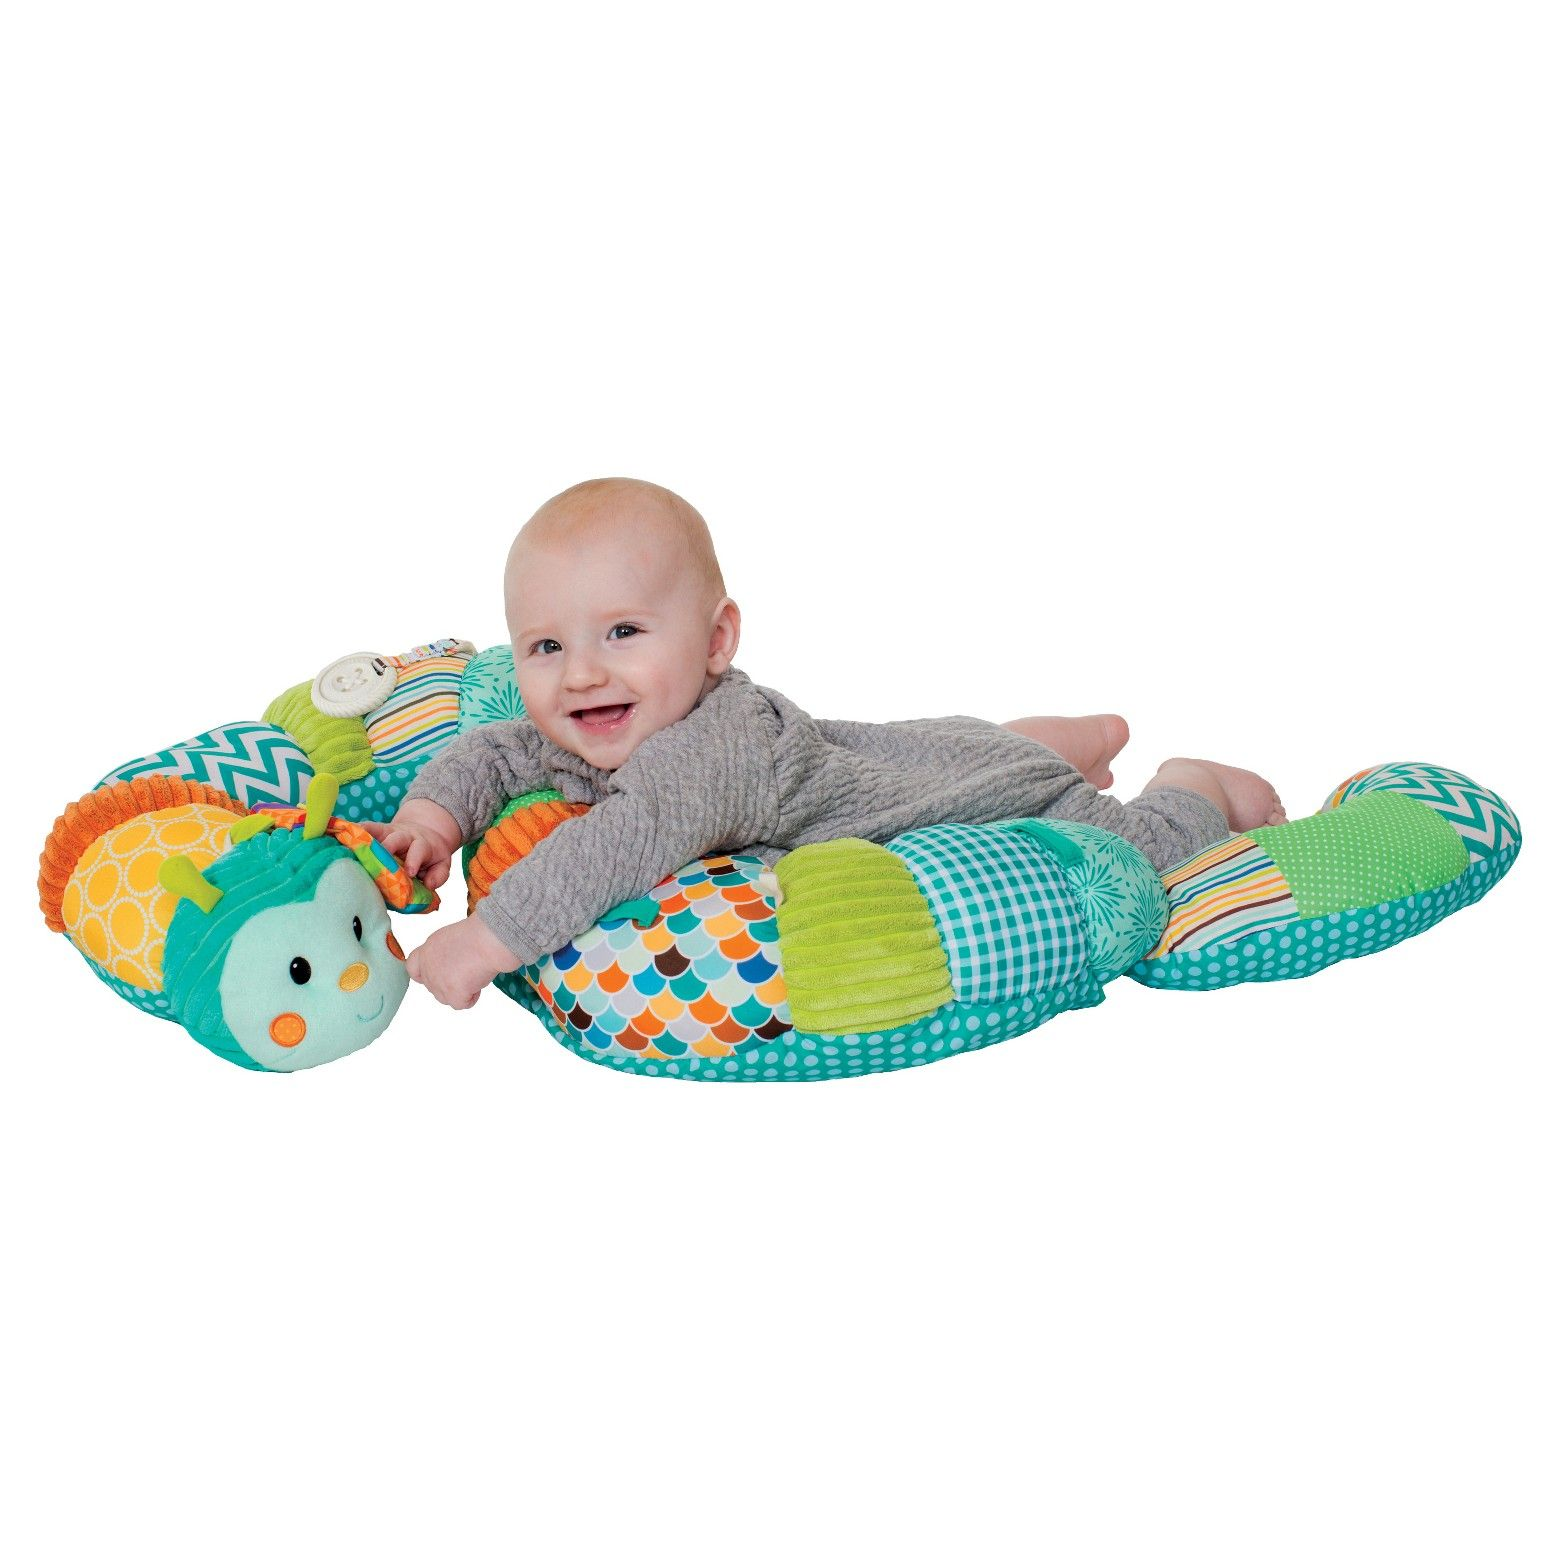 80bc56c1b6c53 Babies will go gaga for the Prop-A-Pillar Tummy Time & Seated Support, a tummy  time prop that transforms into a secure seat positioner.